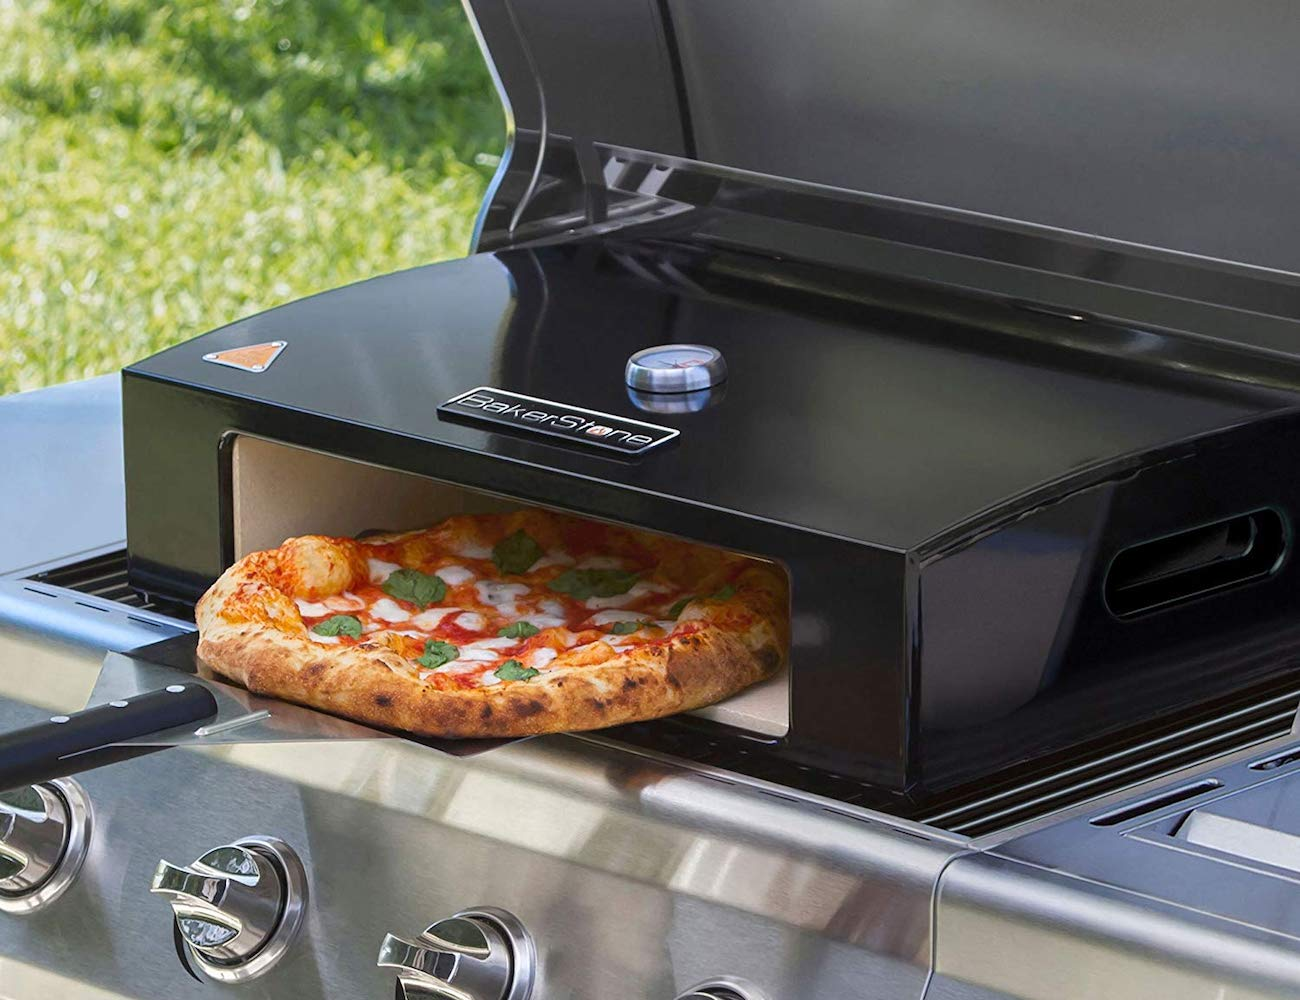 BakerStone+Pizza+Oven+Box